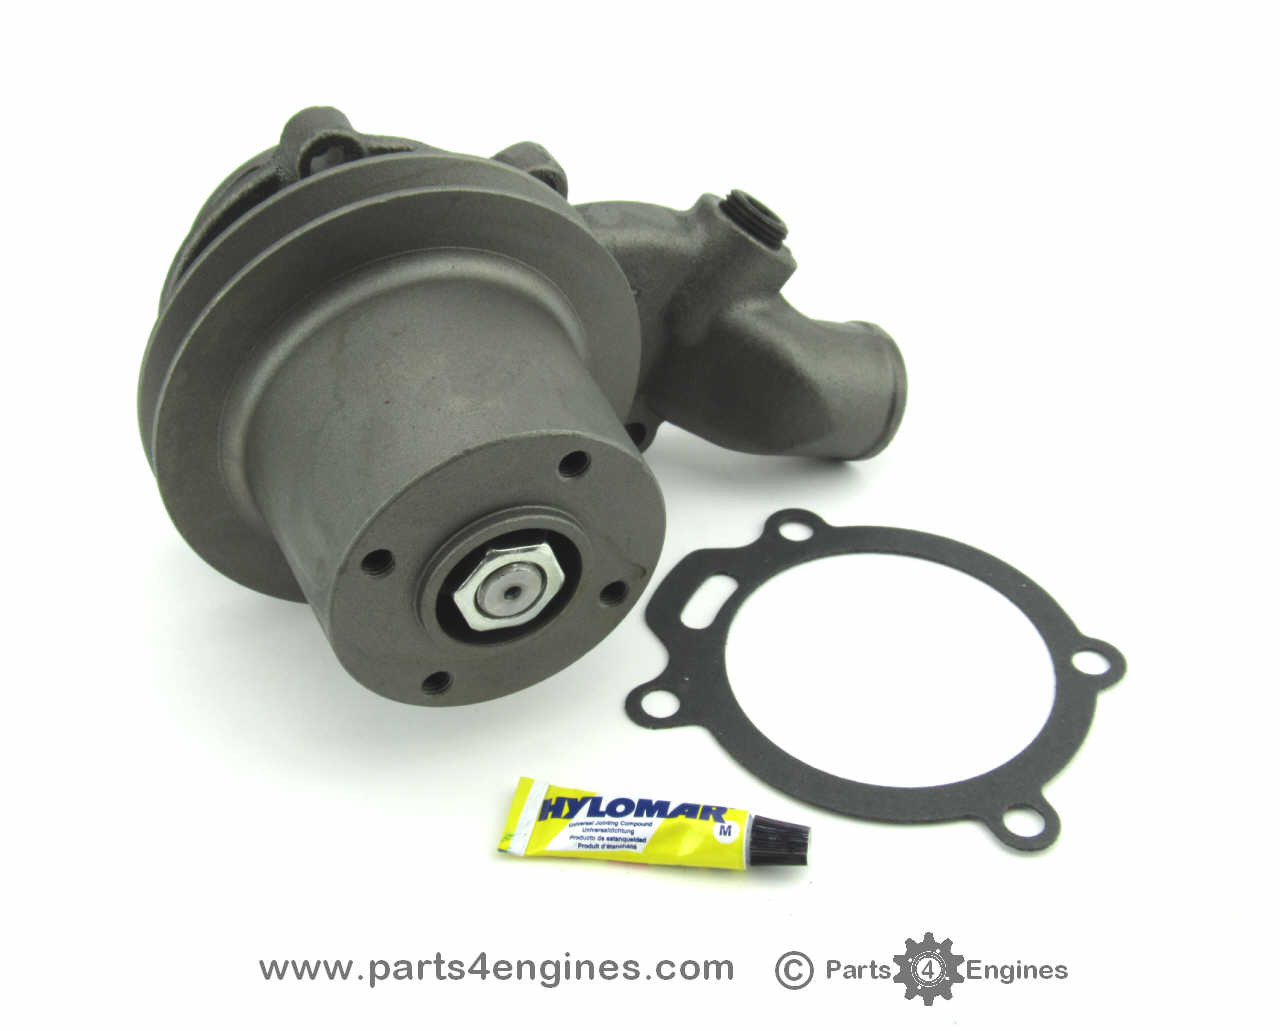 Perkins M90 water pump from parts4engines.com